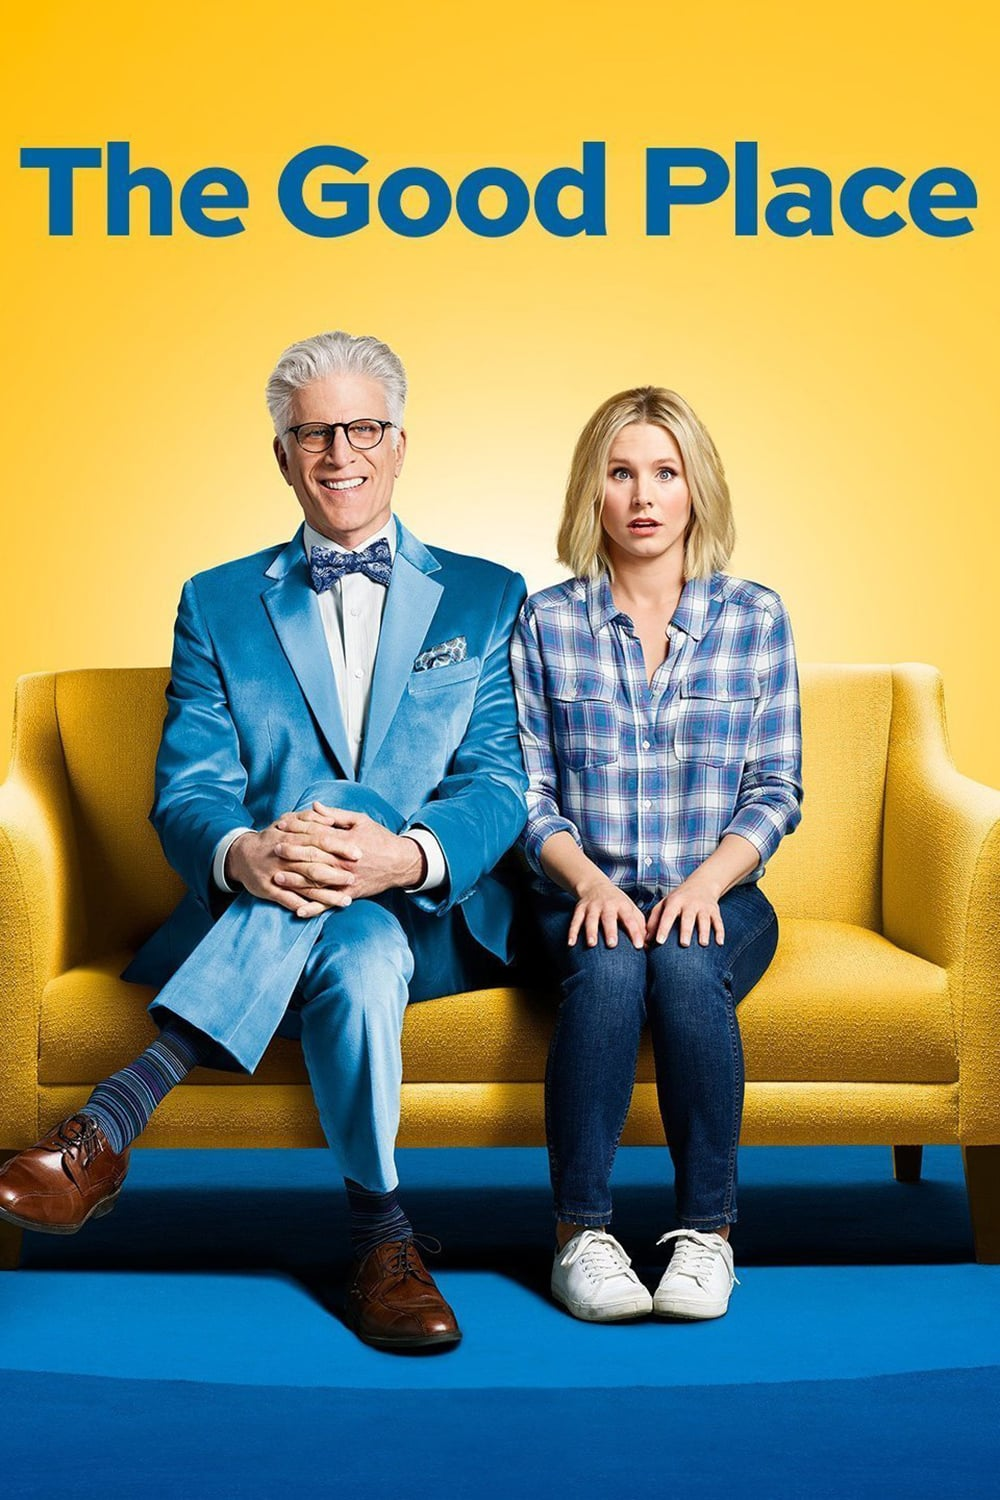 The Good Place - It's cute. It appeals to me as an armchair theologian and a fan of New Girl.